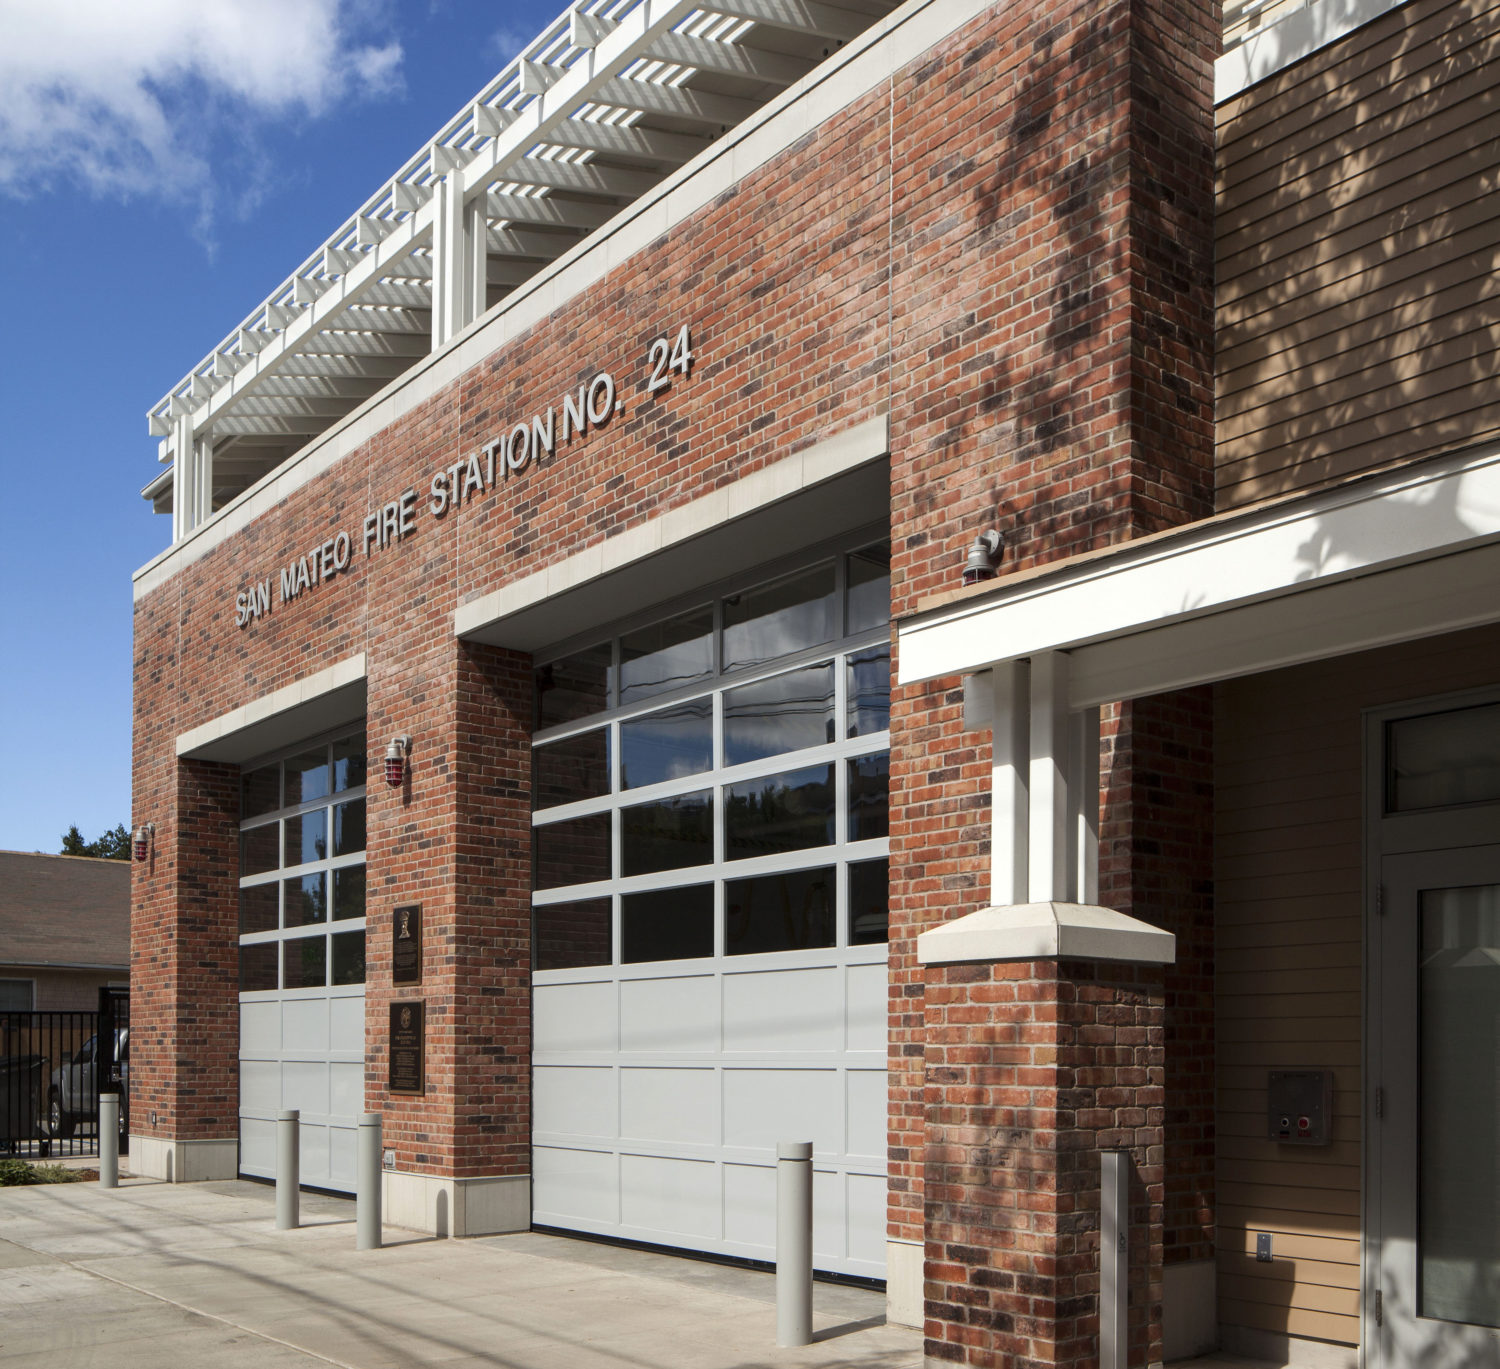 San Mateo Fire Station No. 24